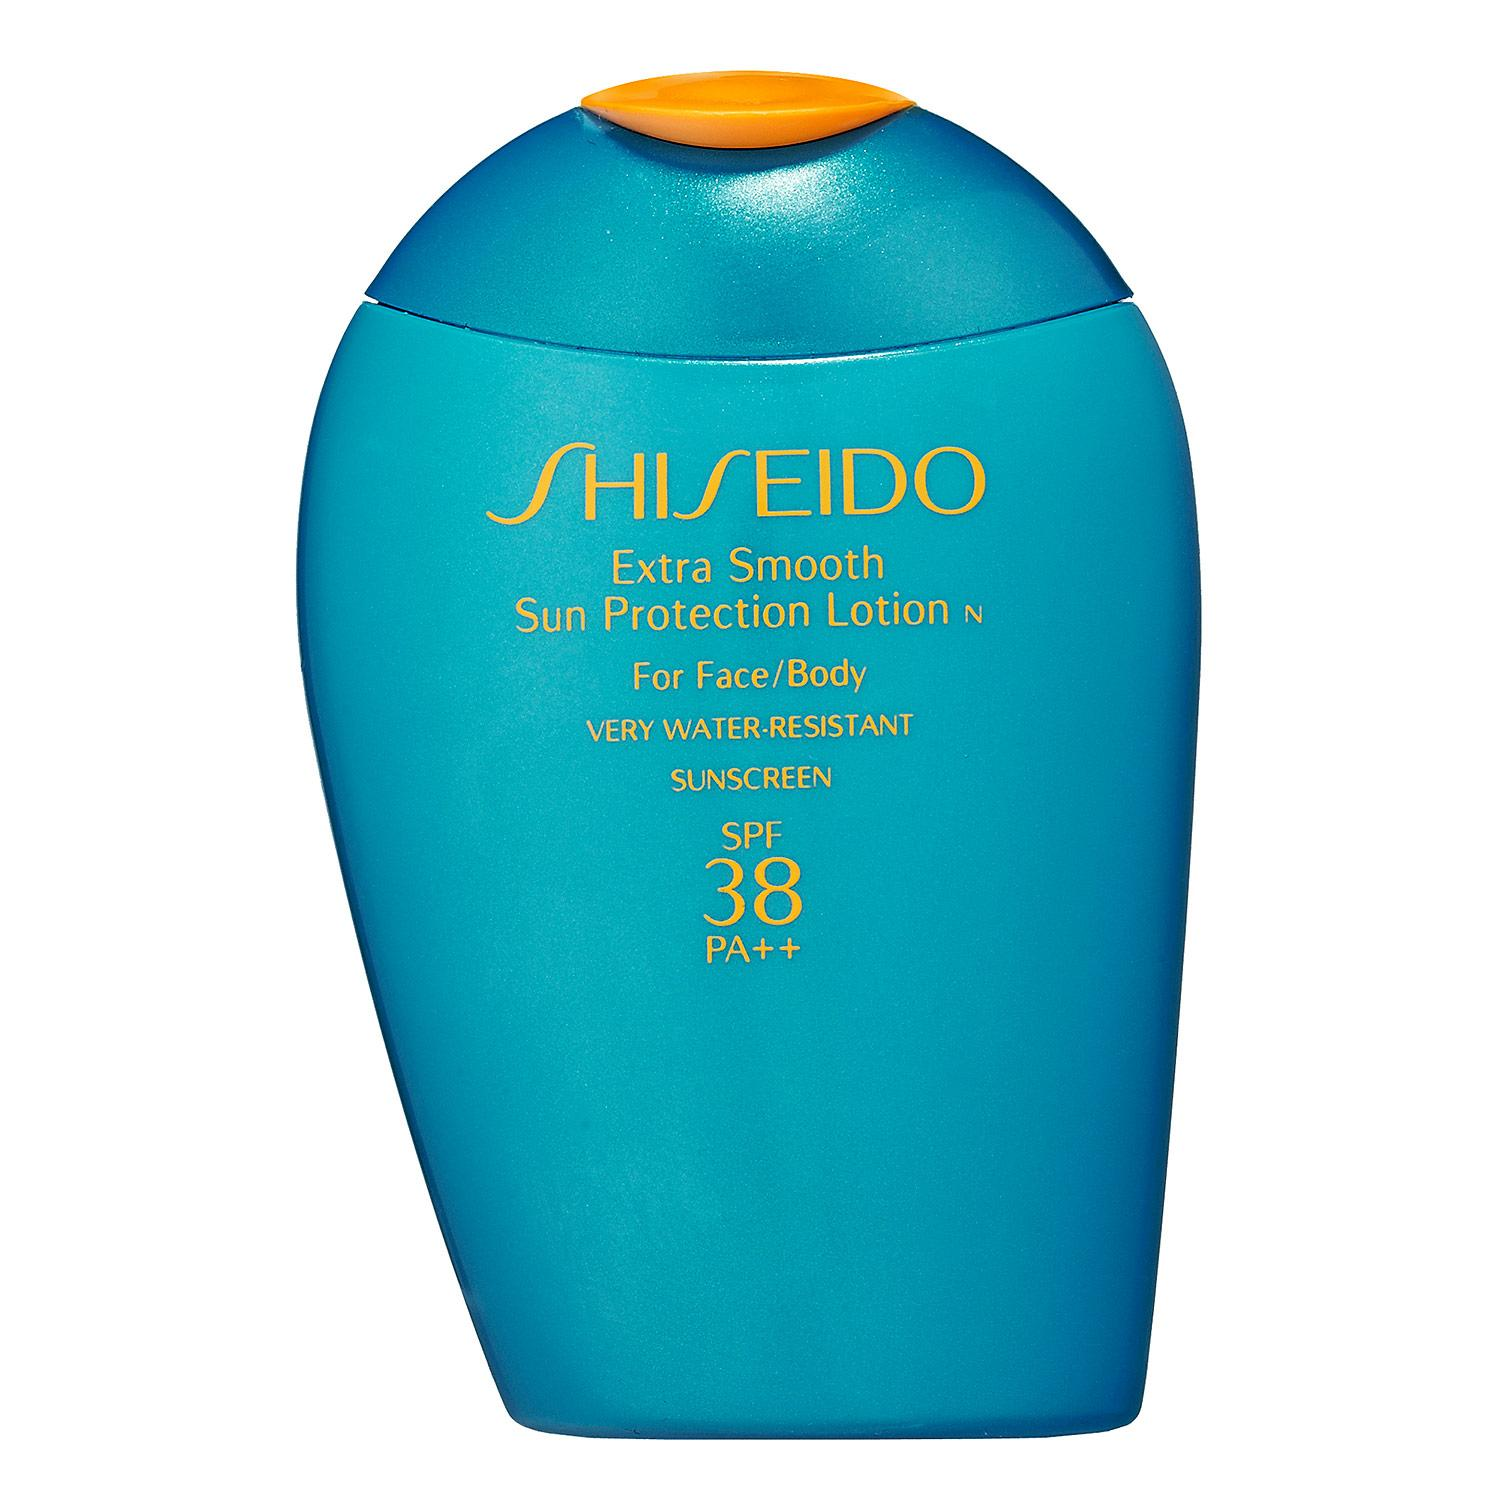 Extra Smooth Sun Protection Lotion SPF 38 PA++